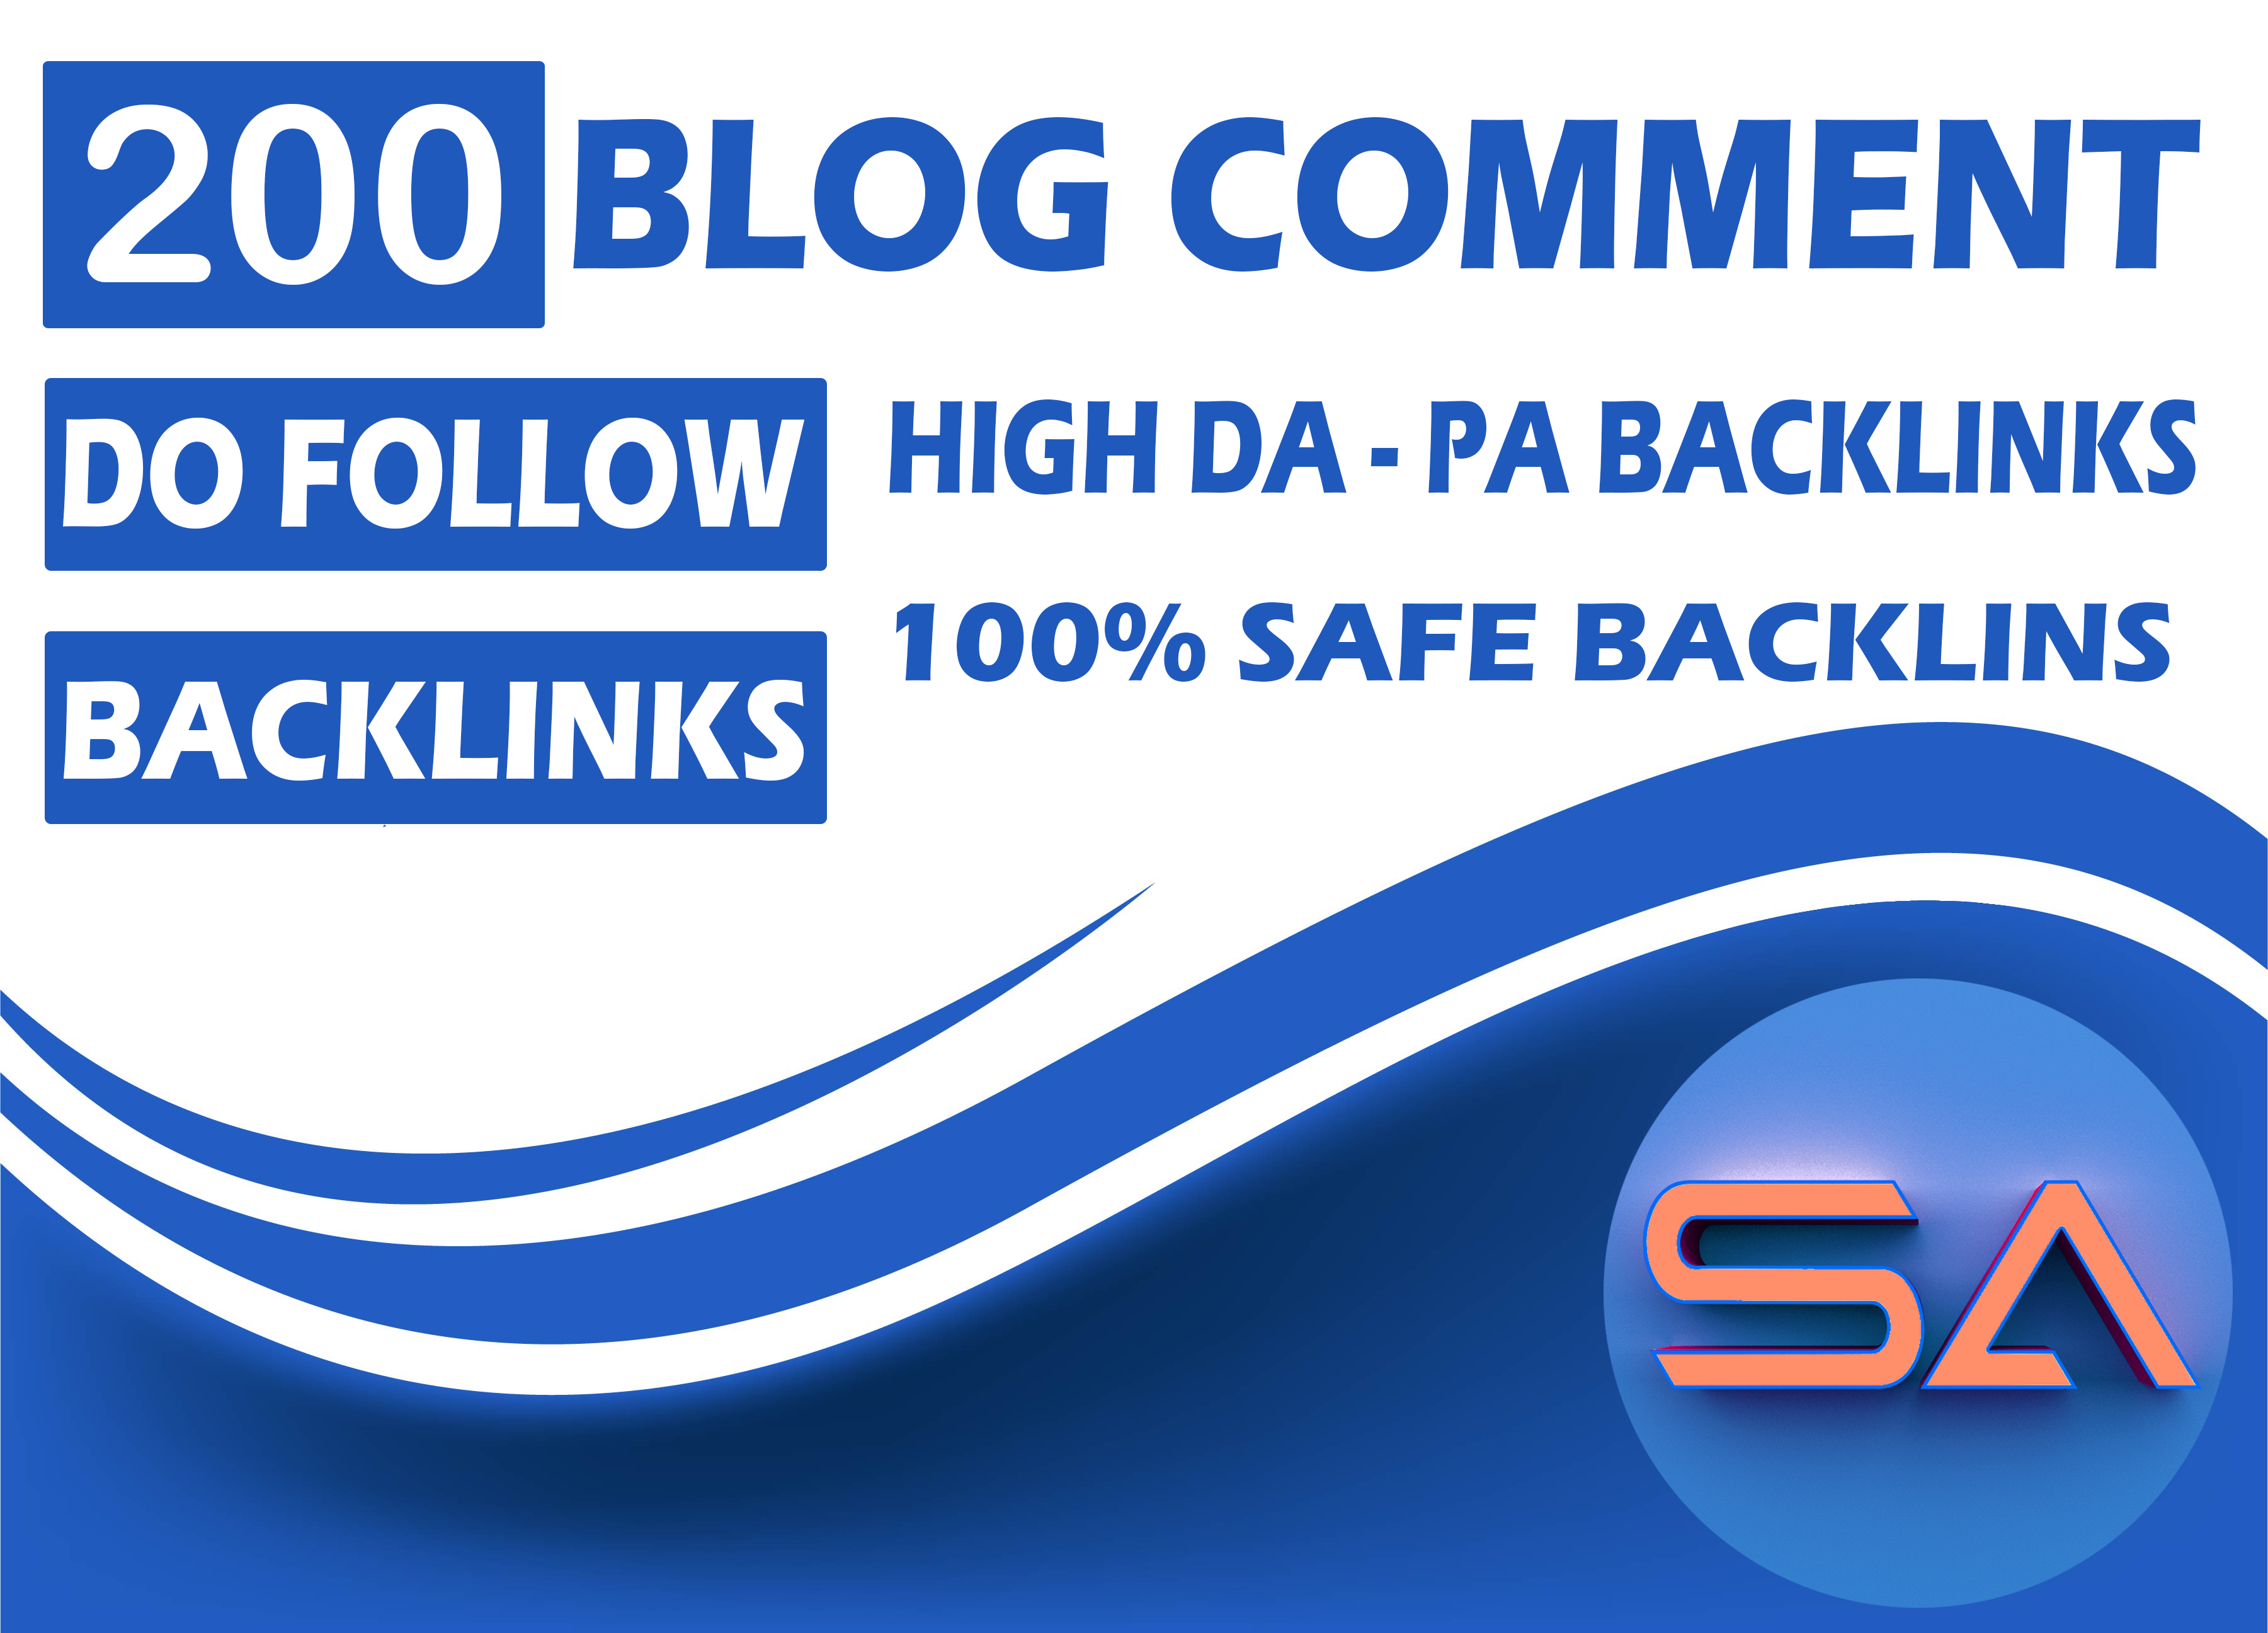 I Will Provide 200 Dofollow Blog Comments Backlinks With High DA PA